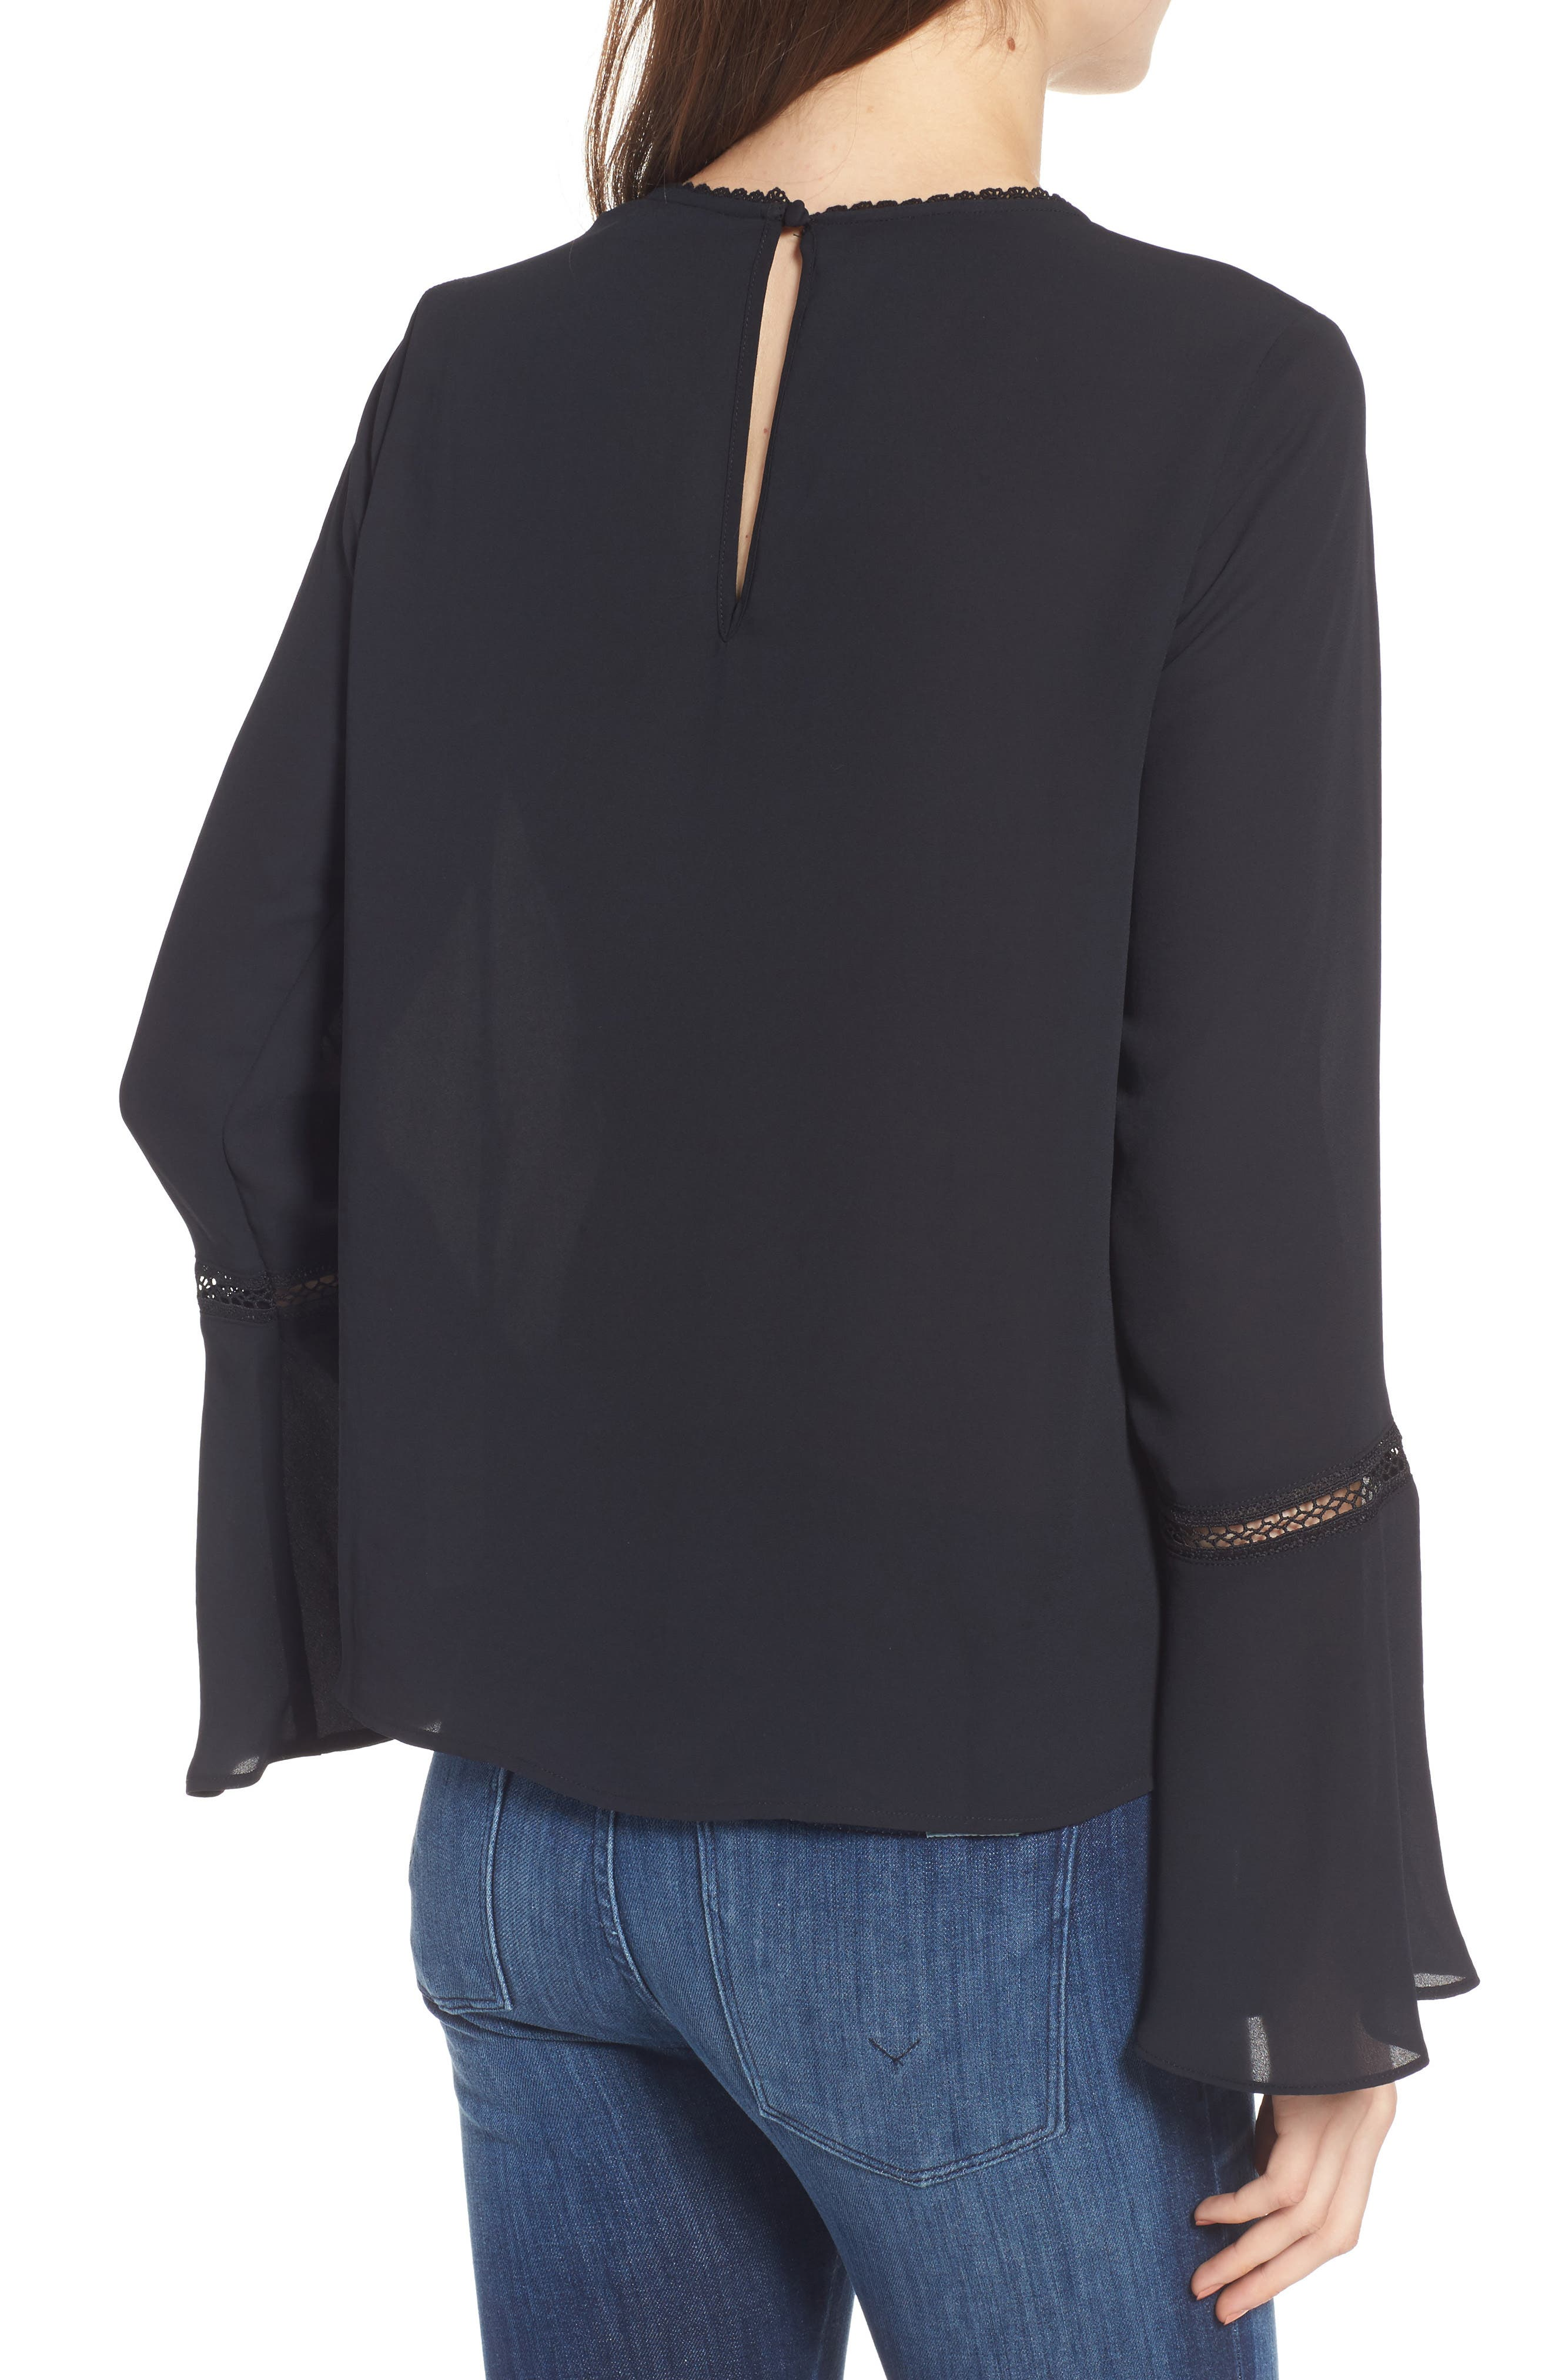 Chava Bell Sleeve Top,                             Alternate thumbnail 2, color,                             001